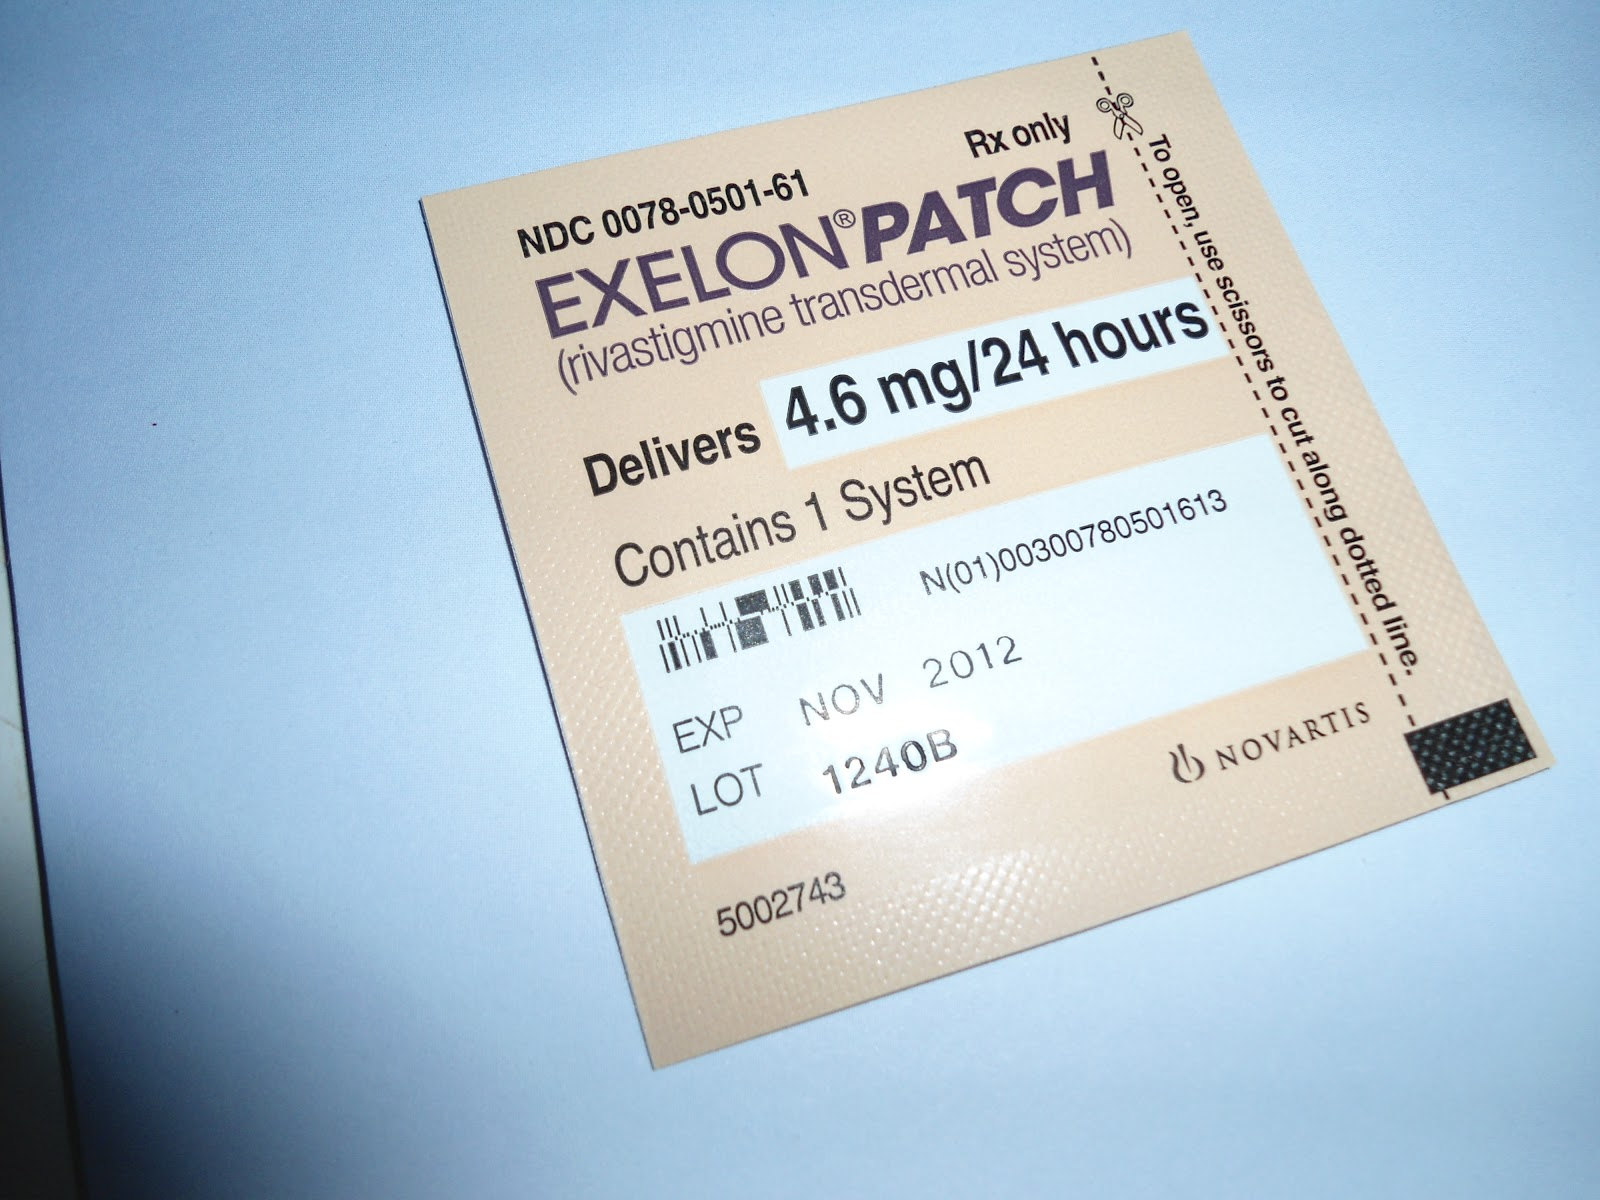 DailyMed - EXELON- rivastigmine patch, extended release